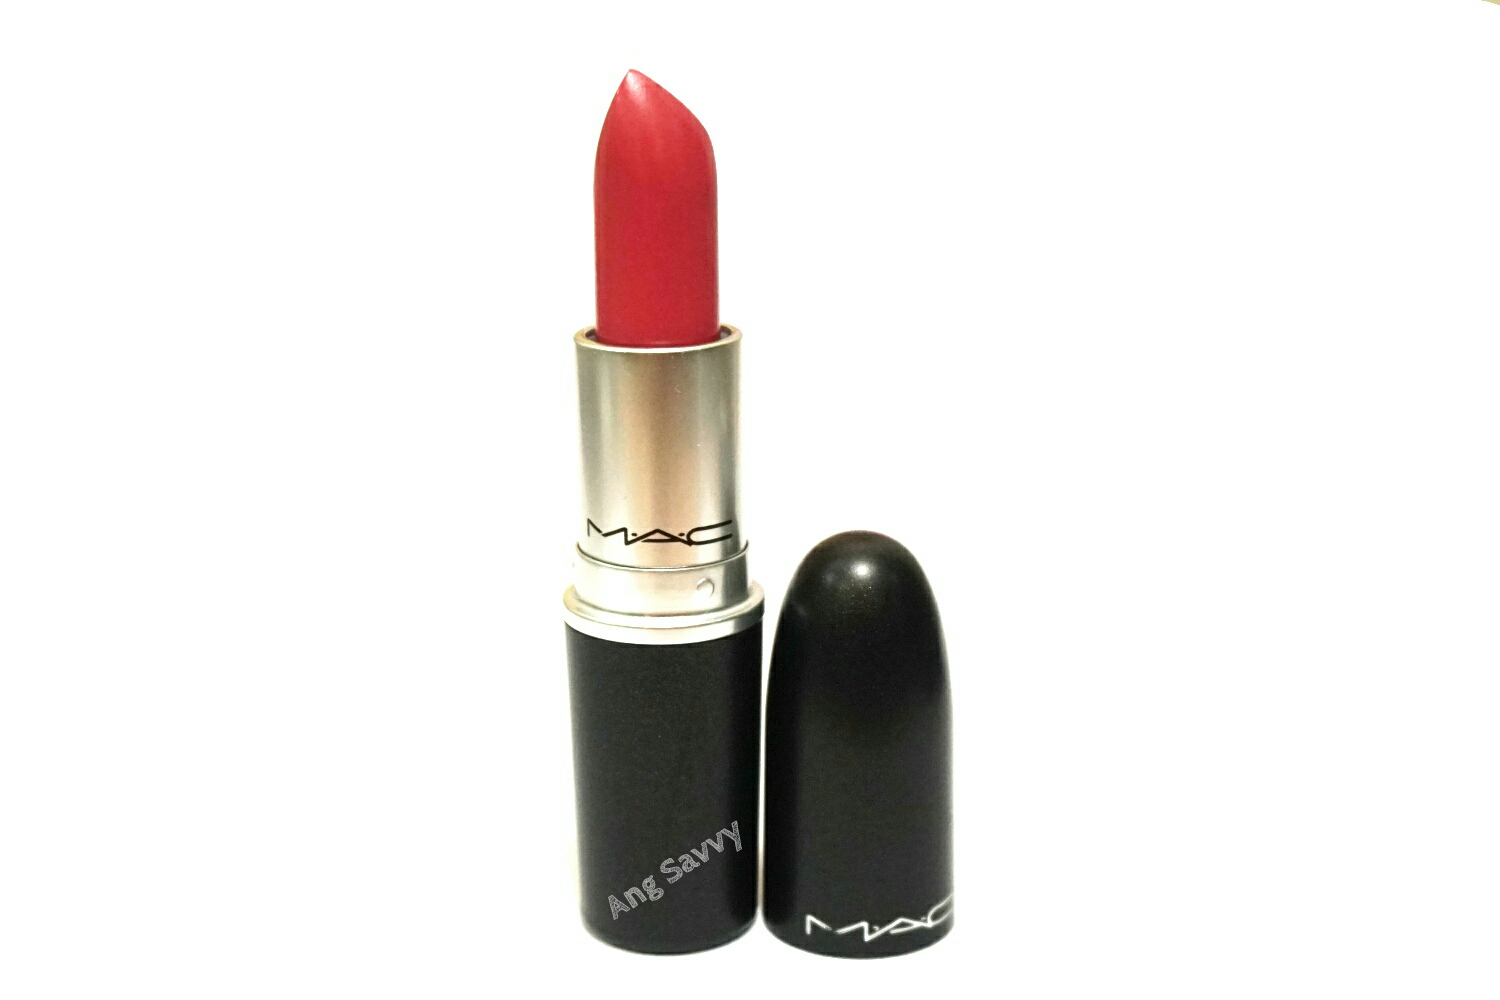 MAC Nouvelle Vogue Lipstick